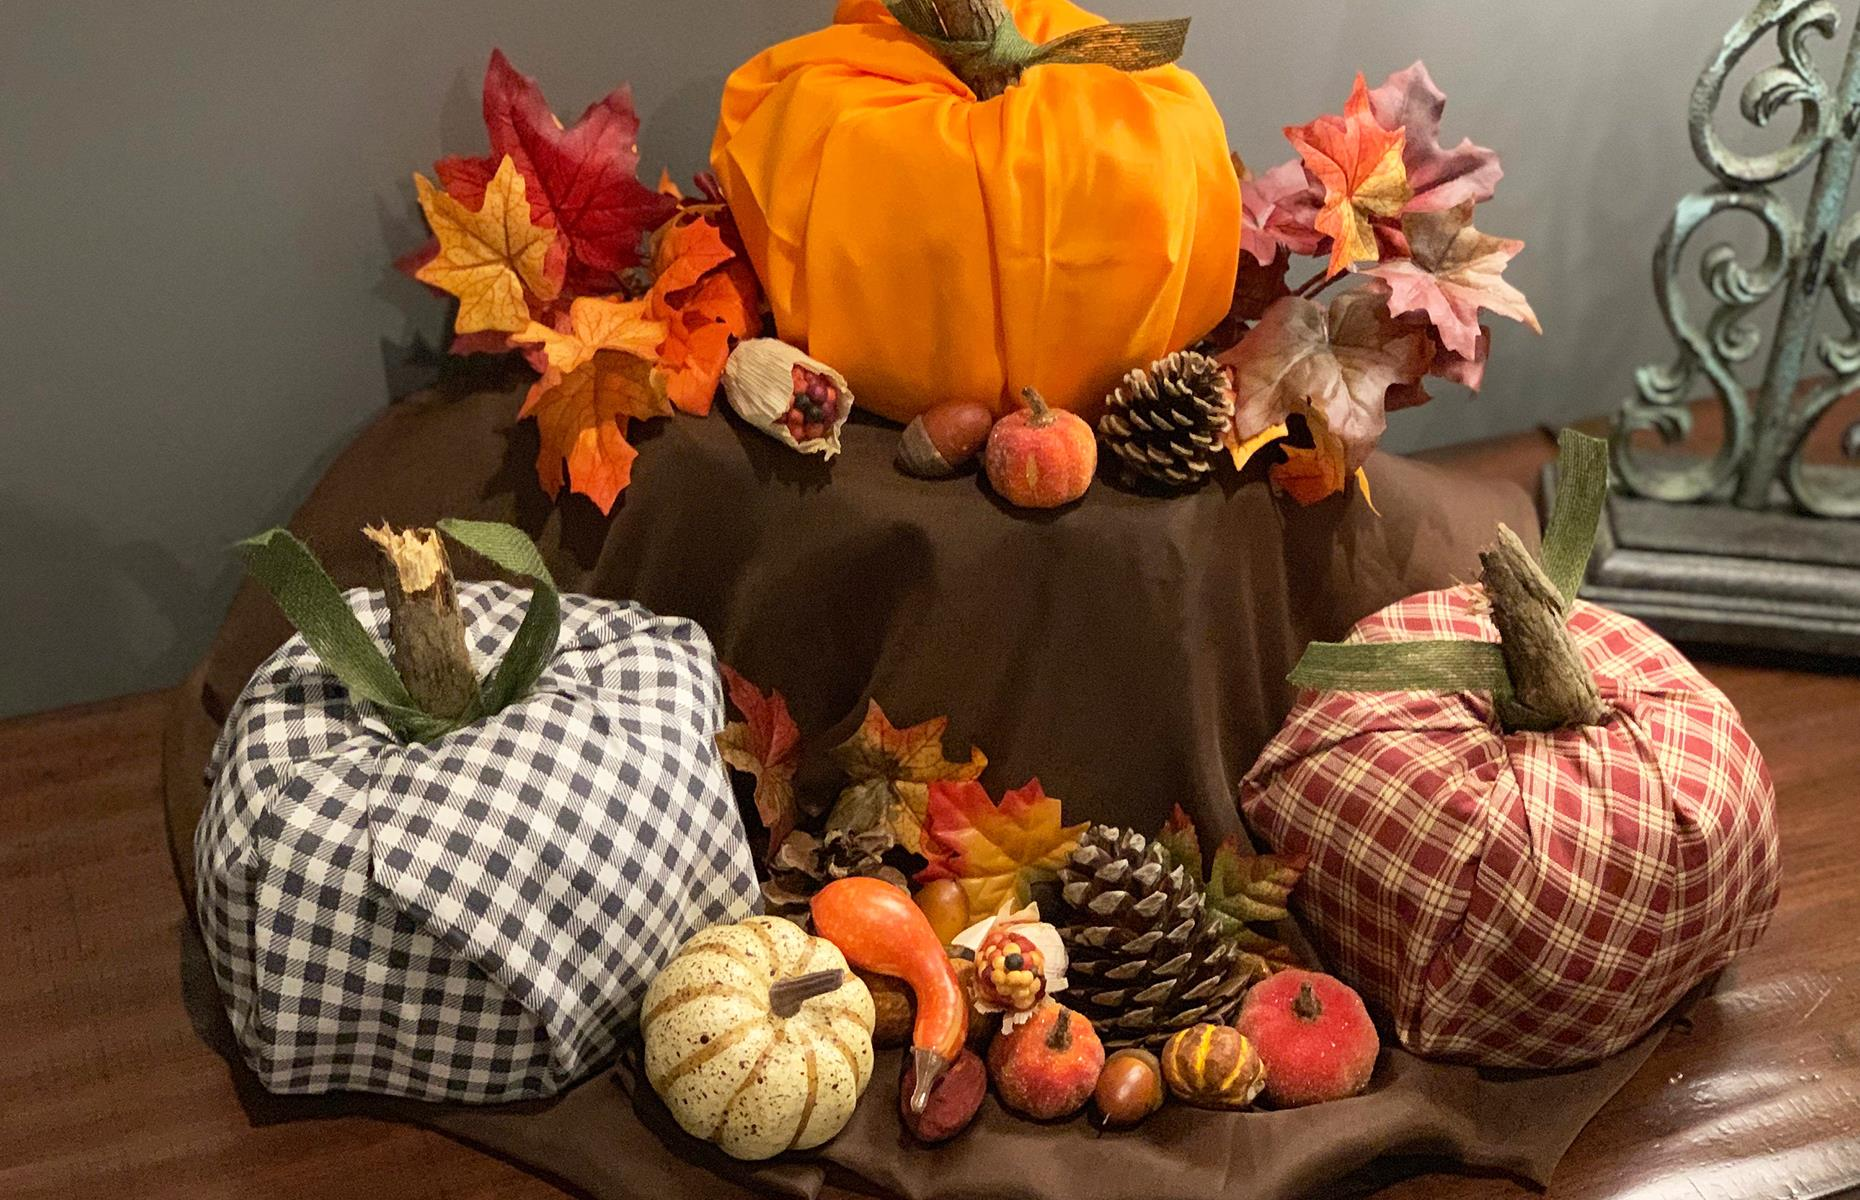 26 Awesome Pumpkin Decorating Ideas To Try At Home